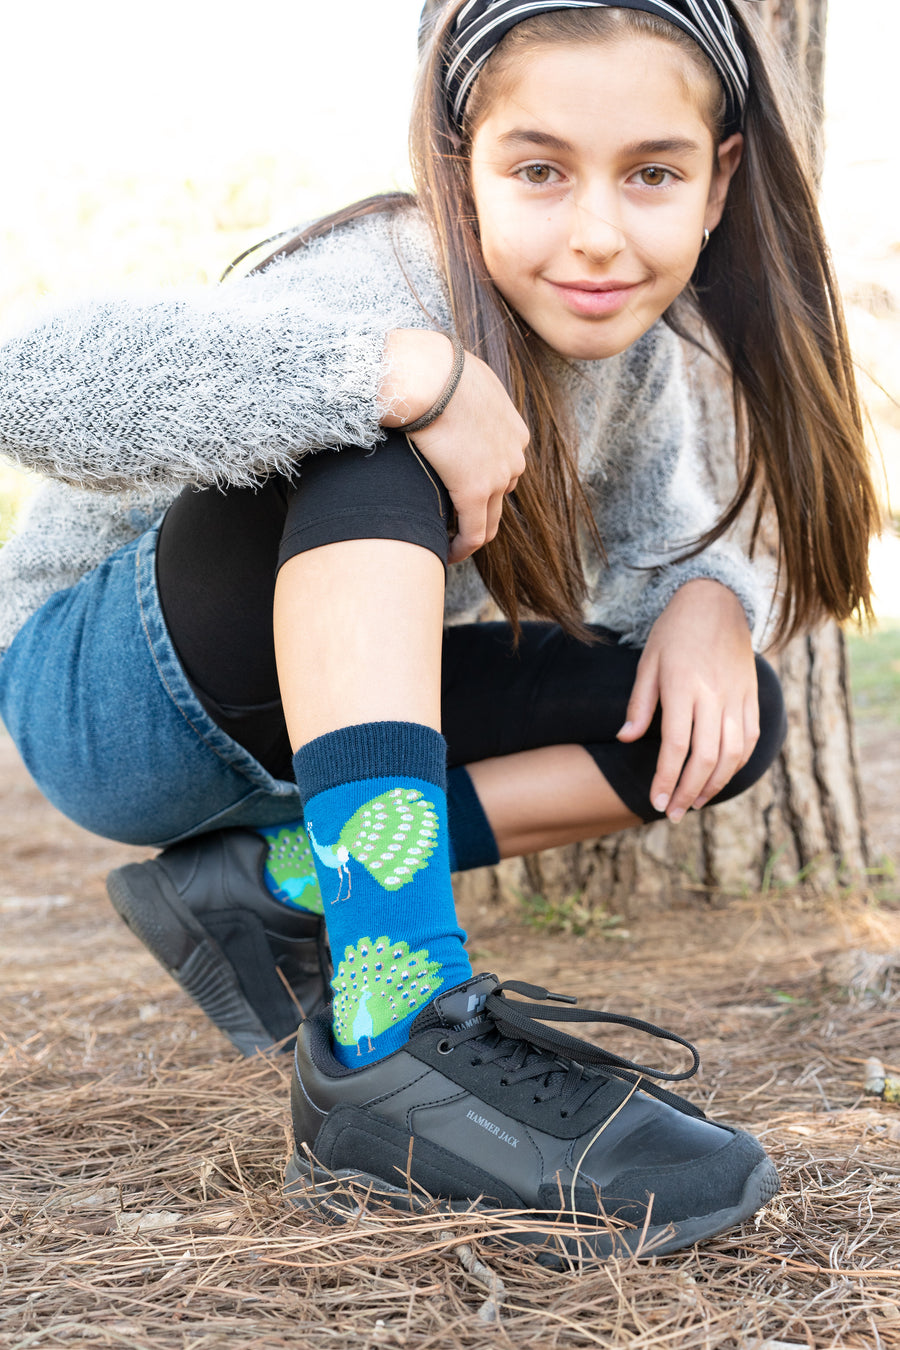 Kids Peacock Socks blue and green